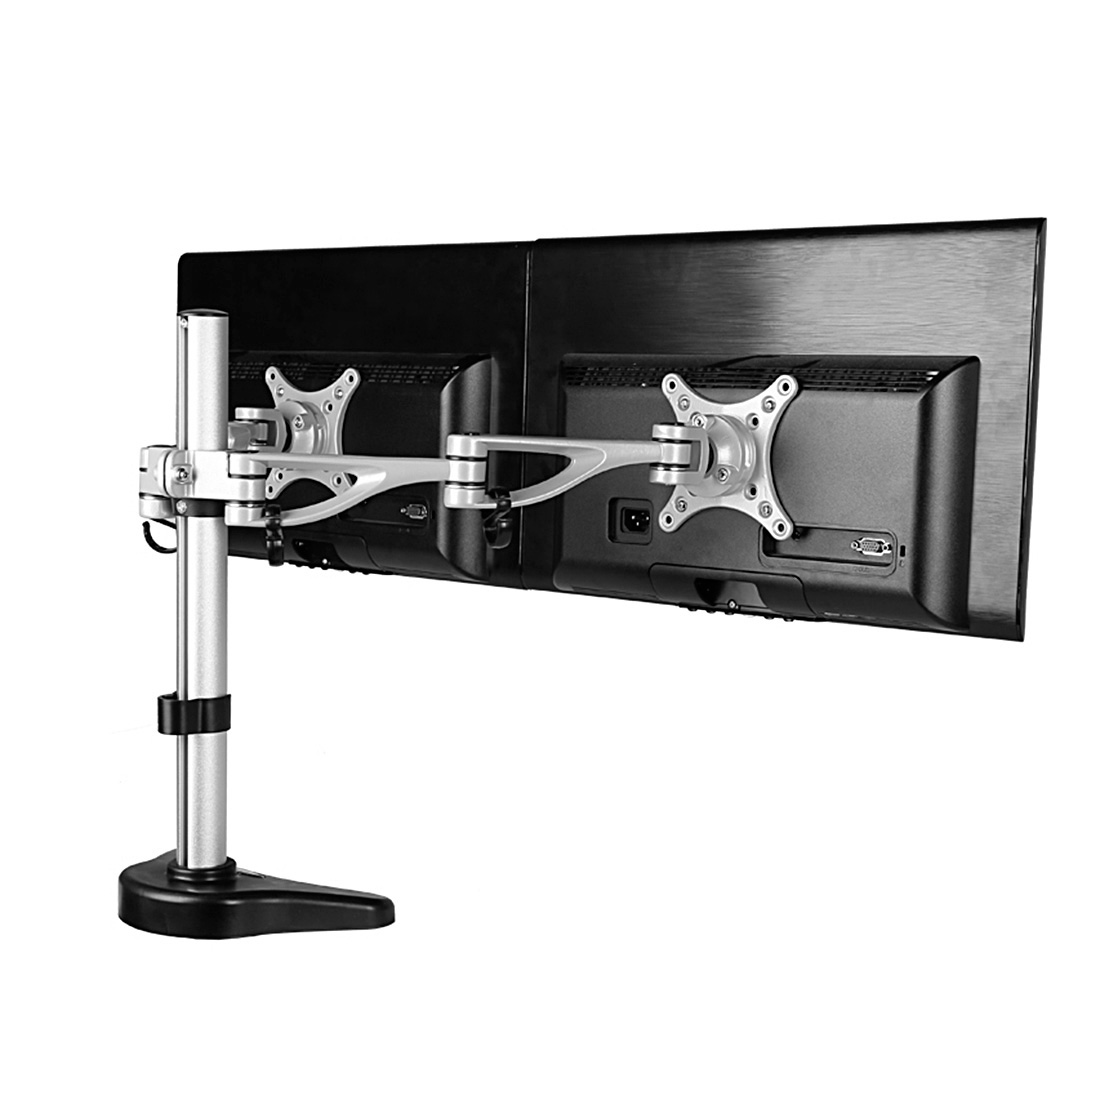 FLEXIMOUNTS M13 Clamp Dual Monitor arm Desk Mounts Monitor Stand